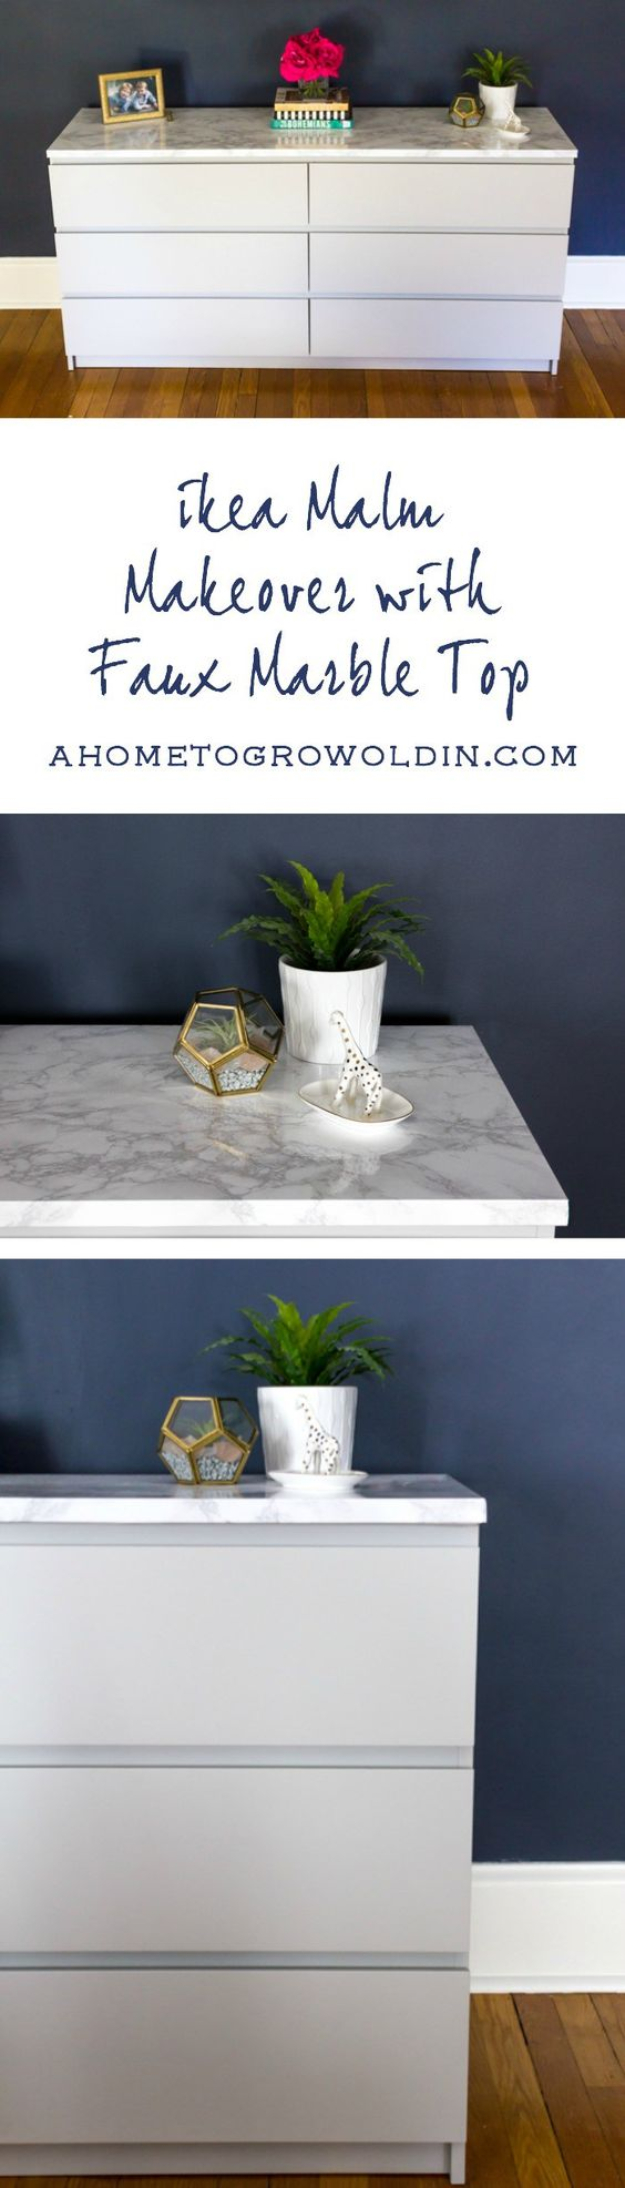 DIY Faux Marble Ideas - Ikea Malm Dresser with a Marble Top - Easy Crafts and DIY Projects With Faux Marbling Tutorials - Paint and Decorate Home Decor, Creative DIY Gifts and Office Accessories